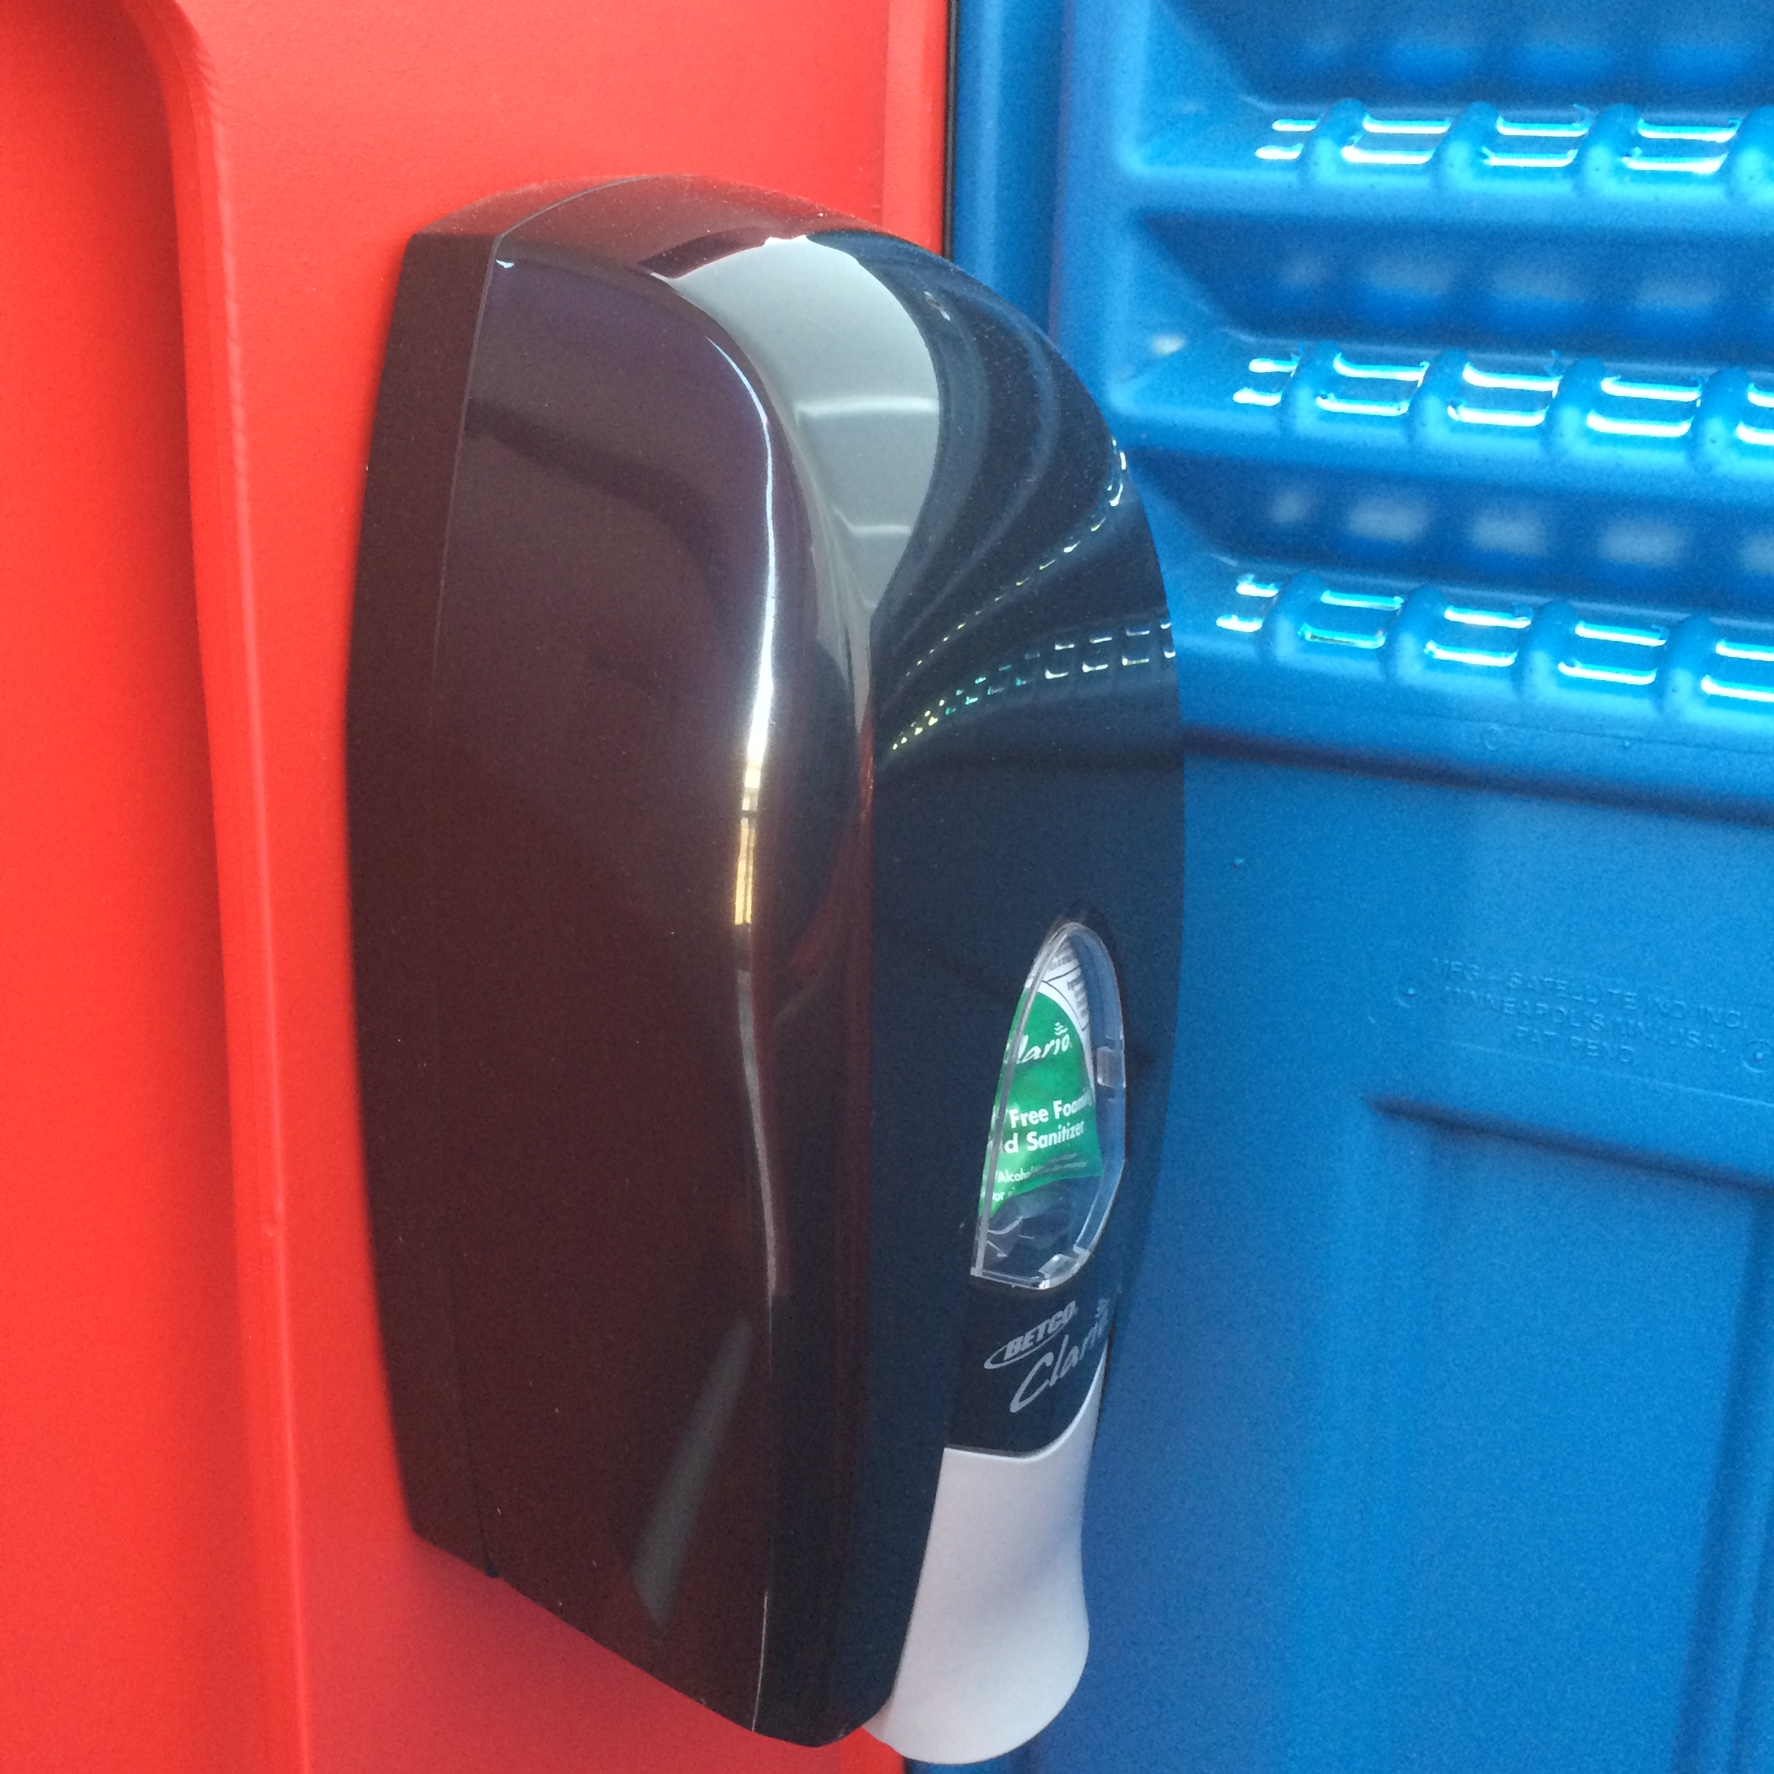 Foaming Hand Sanitizer Inside Portable Toilet